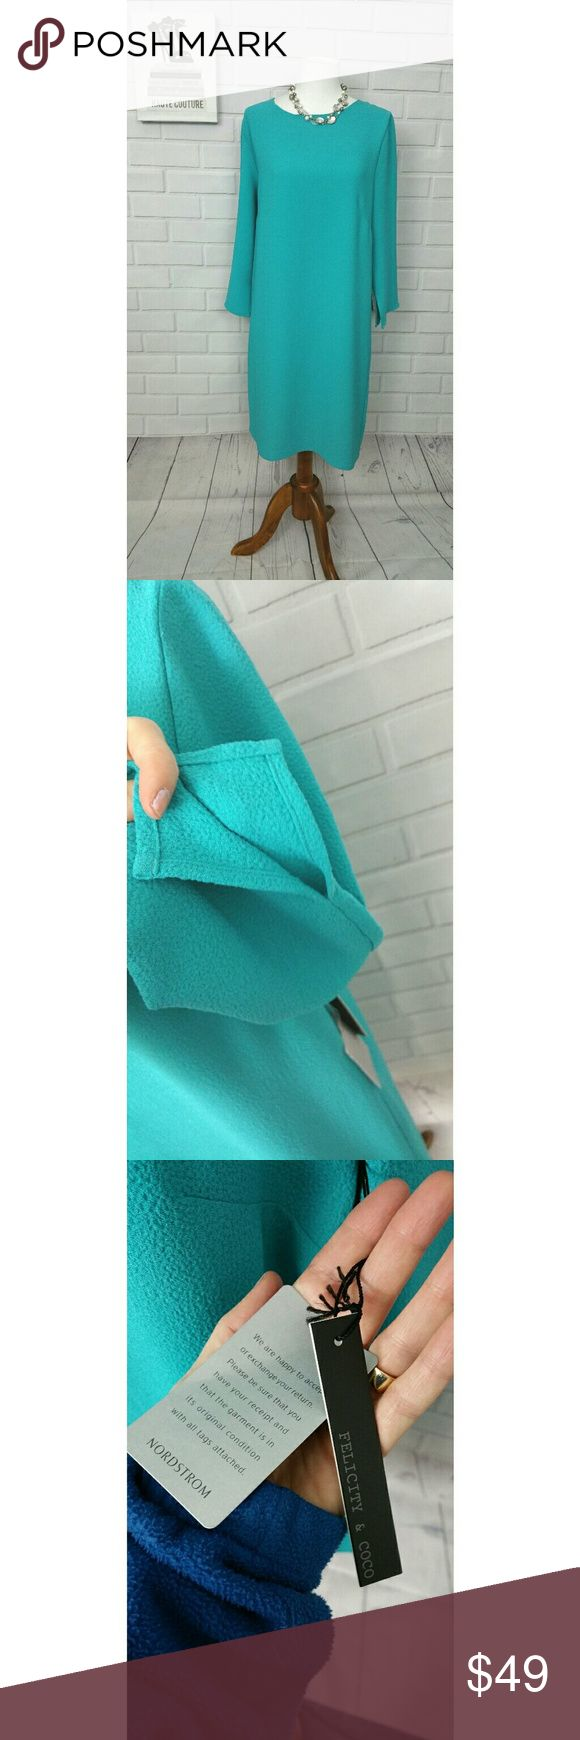 Design Define Stunning best 25 define stunning ideas on pinterest greek words and nwt felicity coco teal sheath crepe dress med beautiful turquoise blue dress